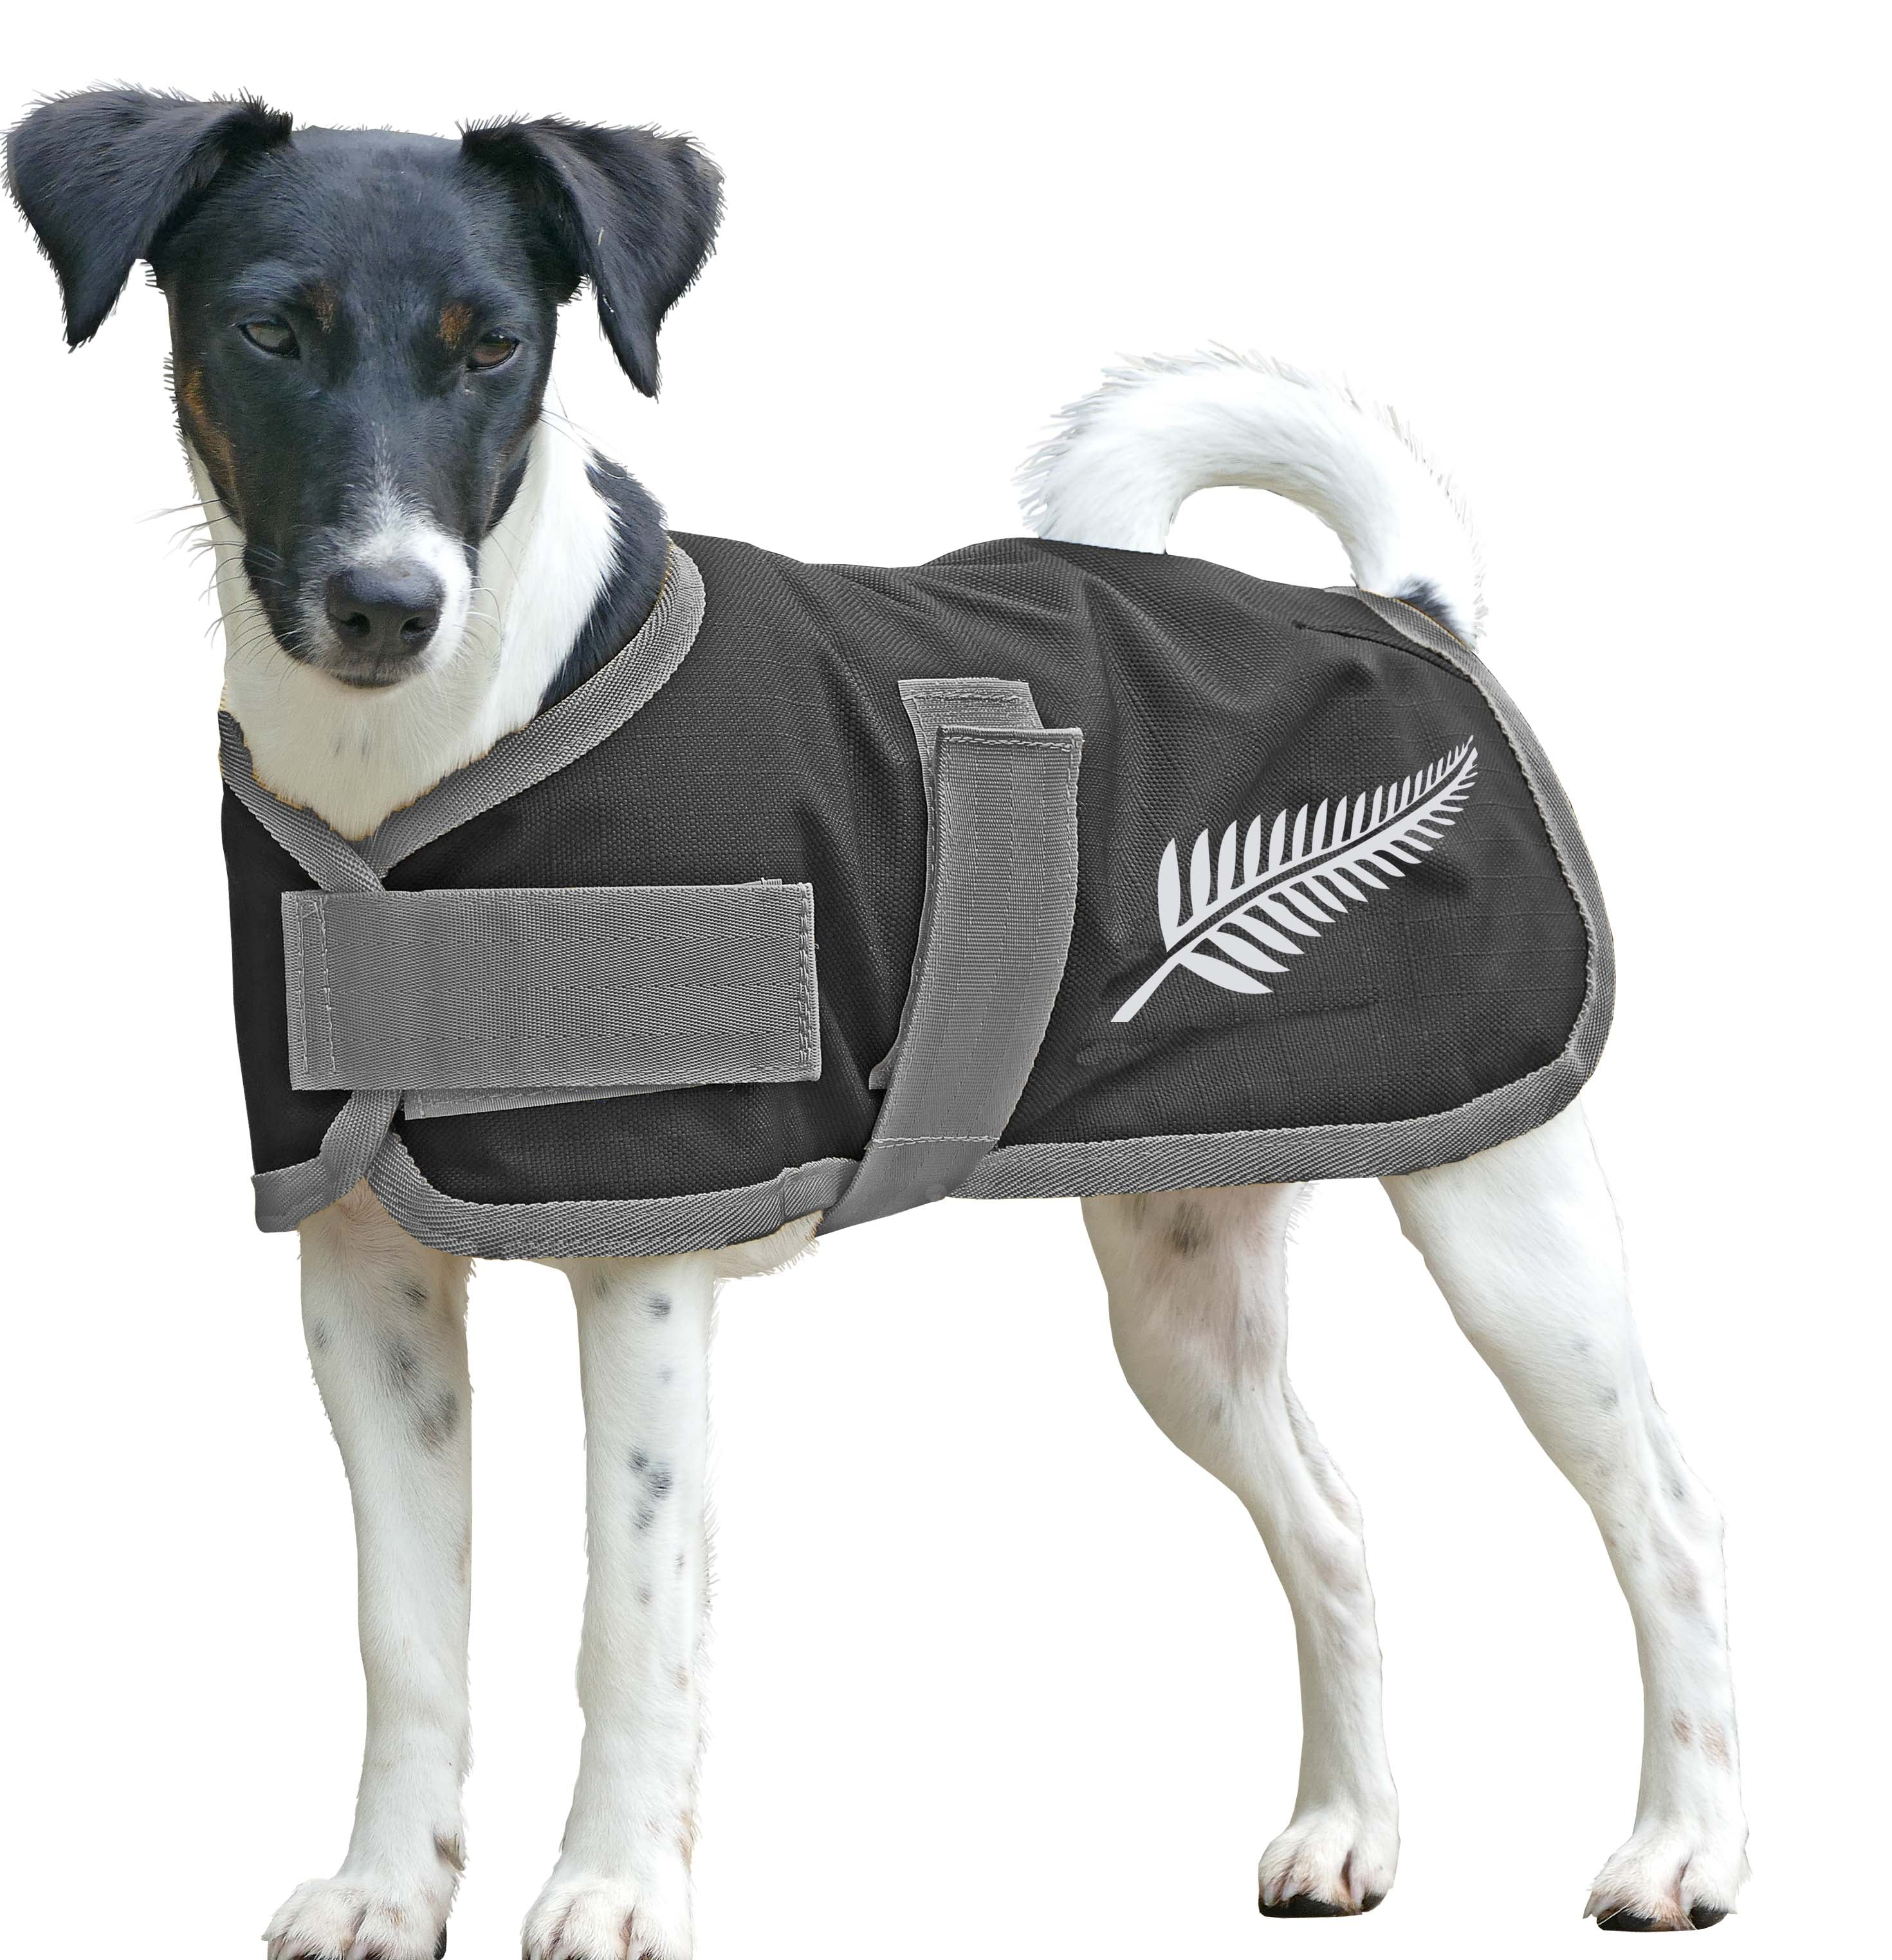 Cavallino Silver Fern Dog Coat